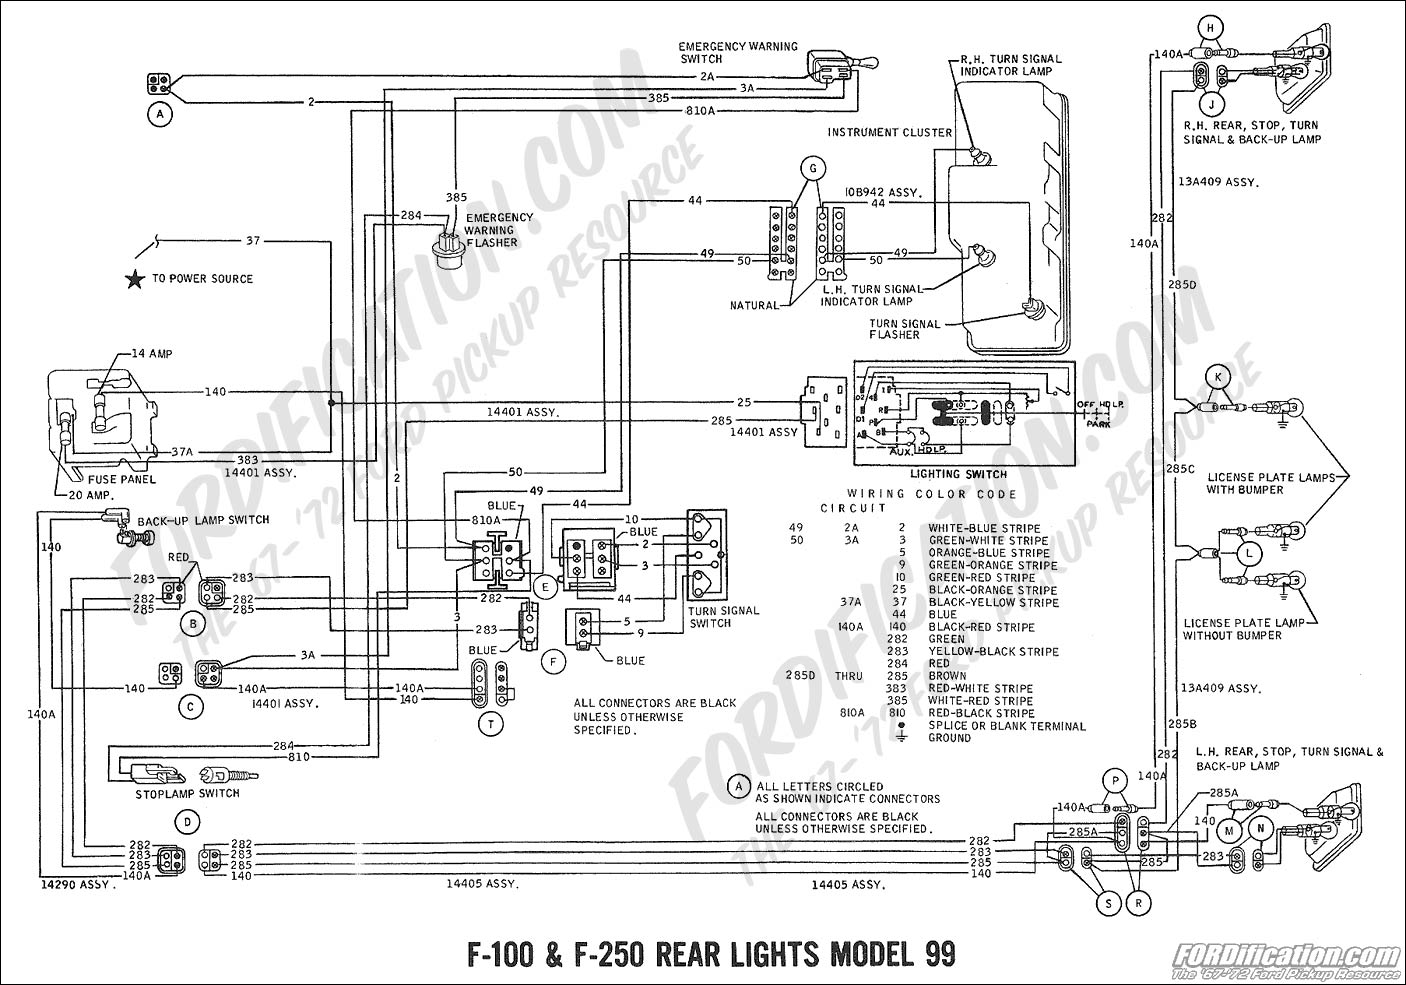 Discussion T21306 ds629842 in addition Ford Ranger 1996 Fuse Box Diagram Usa Version as well 95 Ford F150 Clutch Diagram Wiring Diagrams besides 1999 Ford Taurus Fuse Box Location in addition 2002 Dodge Ram Fuse Box. on 1999 f250 fuse panel diagram